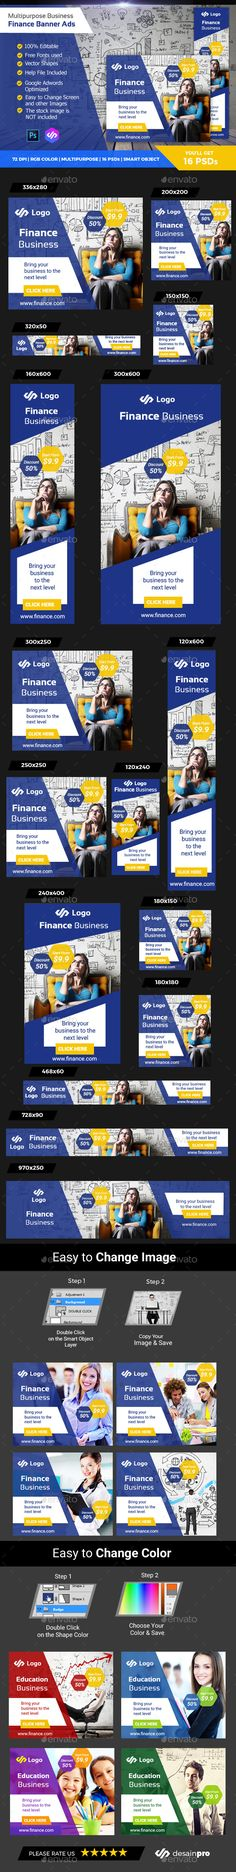 Business Finance Banner Ads - Banners & Ads Web Elements Download here : https://graphicriver.net/item/business-finance-banner-ads/19688140?s_rank=16&ref=Al-fatih